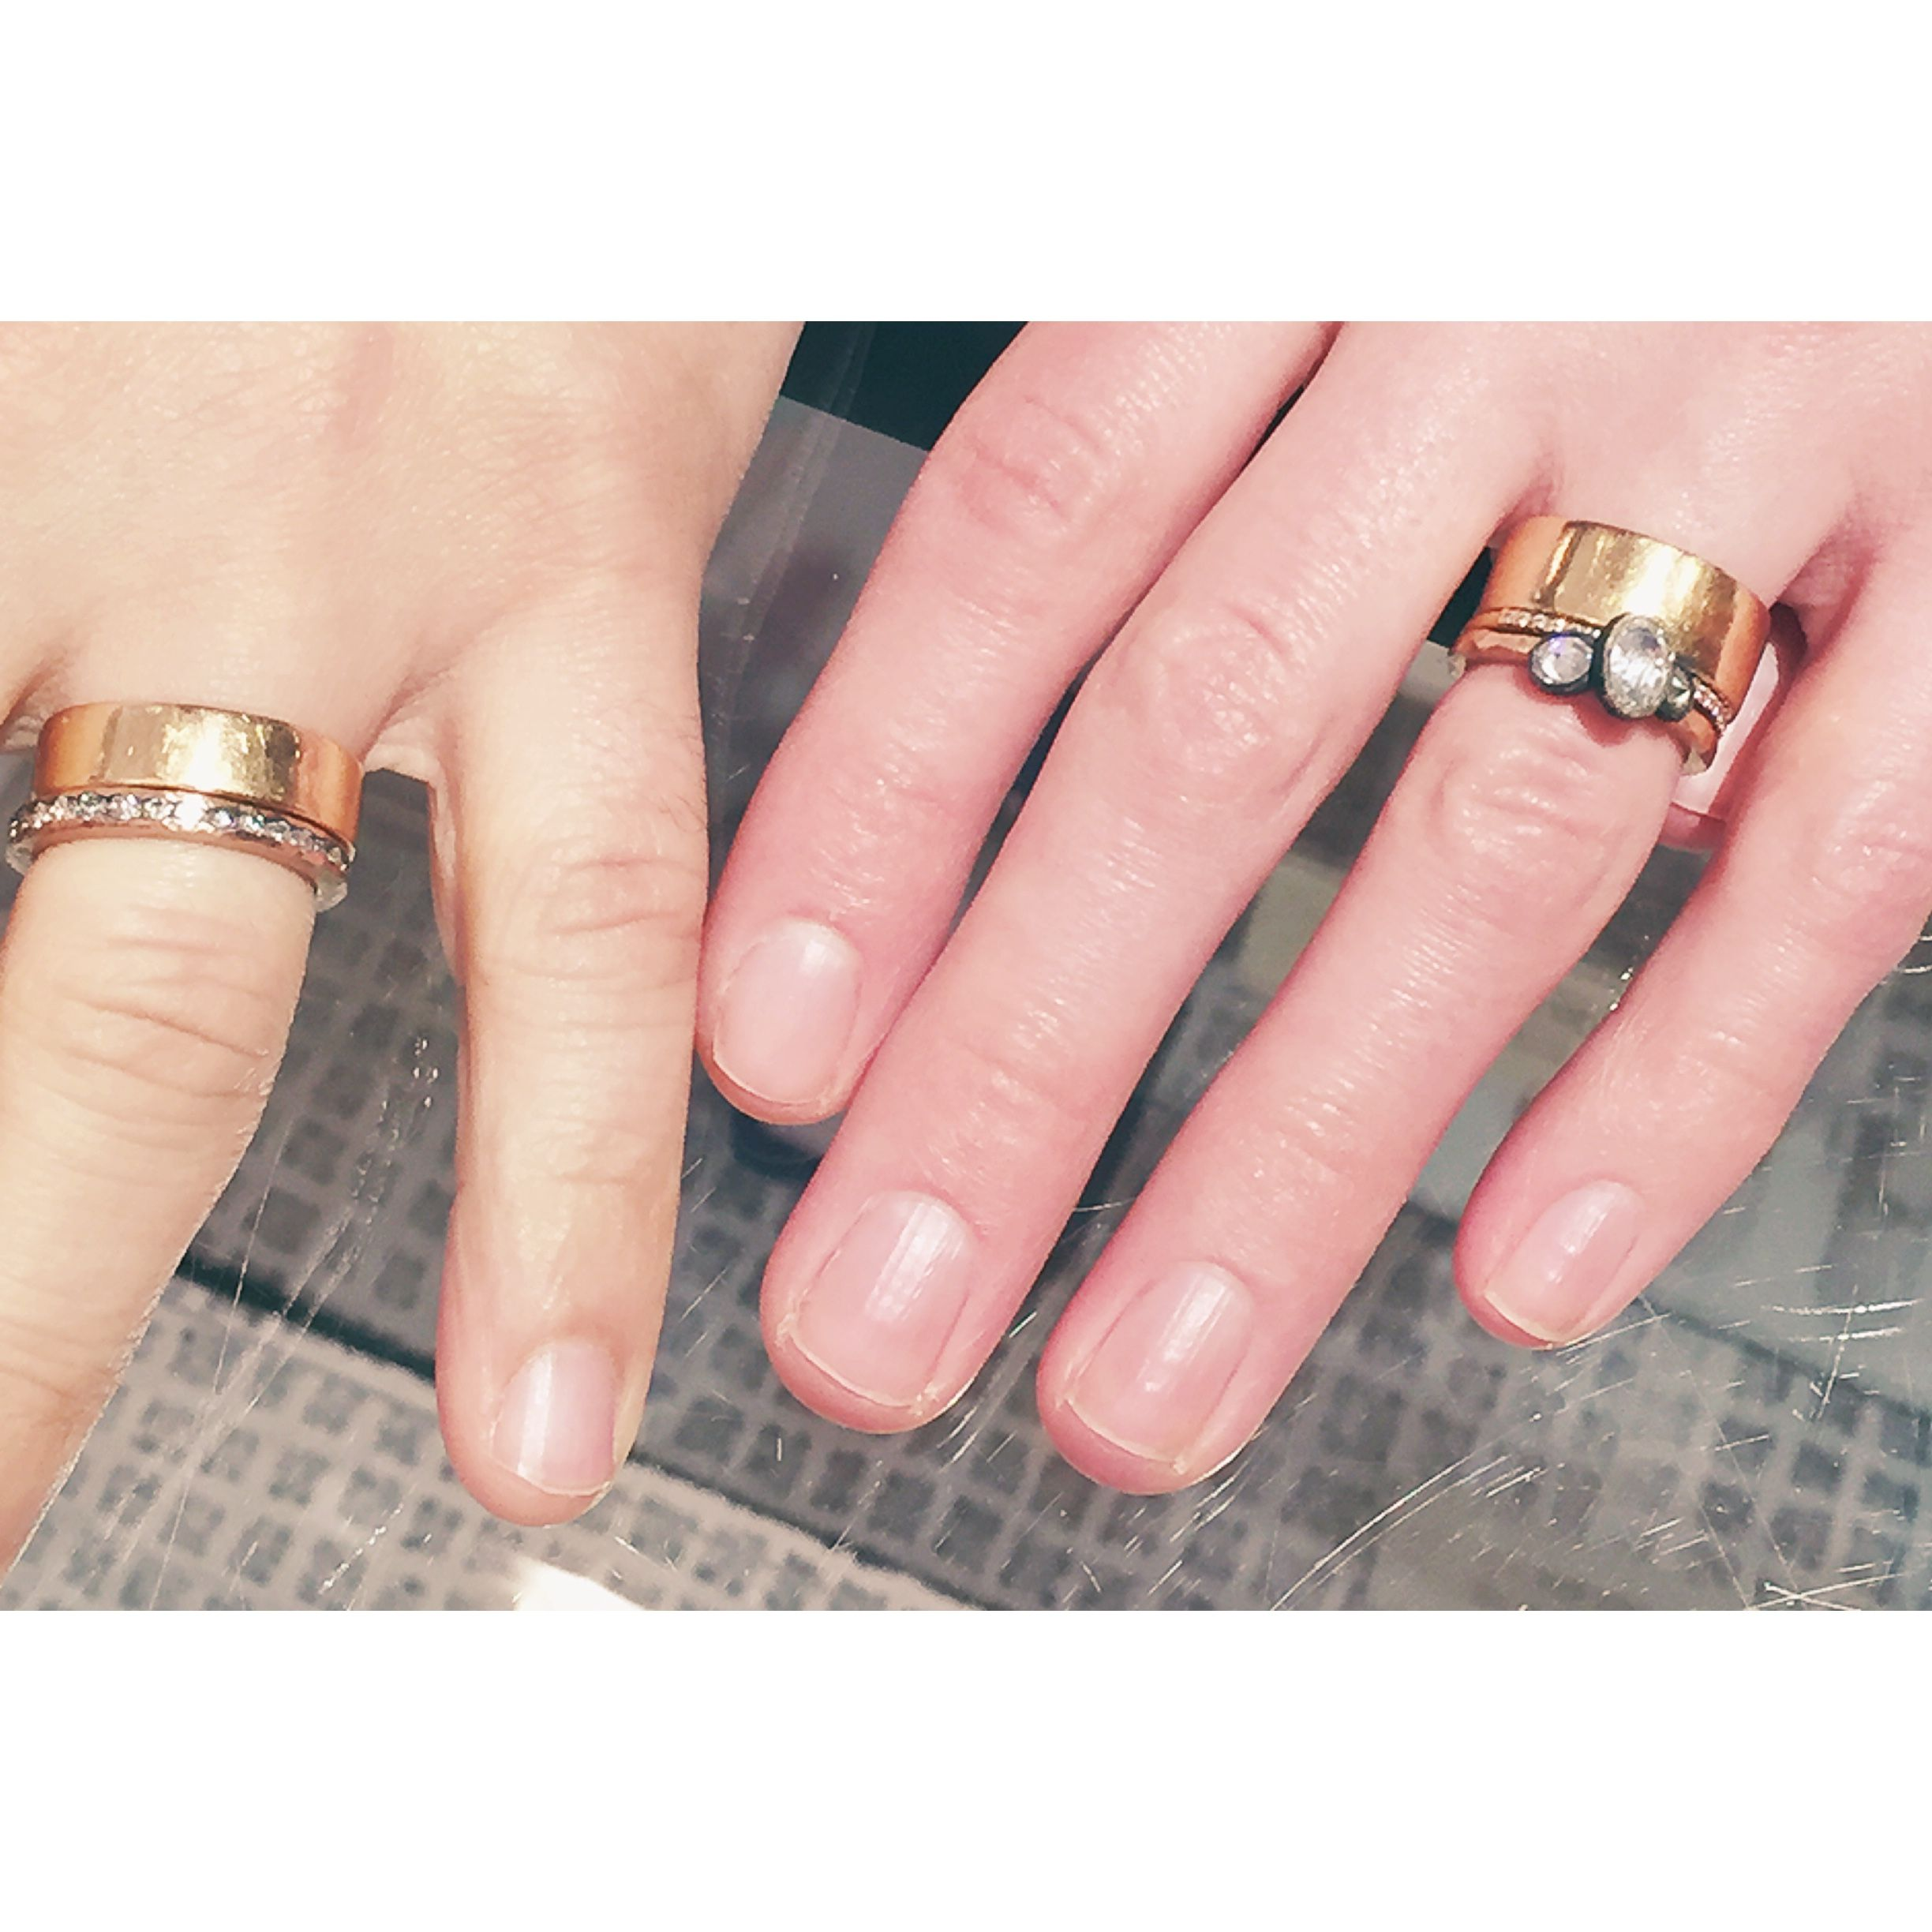 Wedding bands were 18k rose gold designed by Megan Thorne with Todd